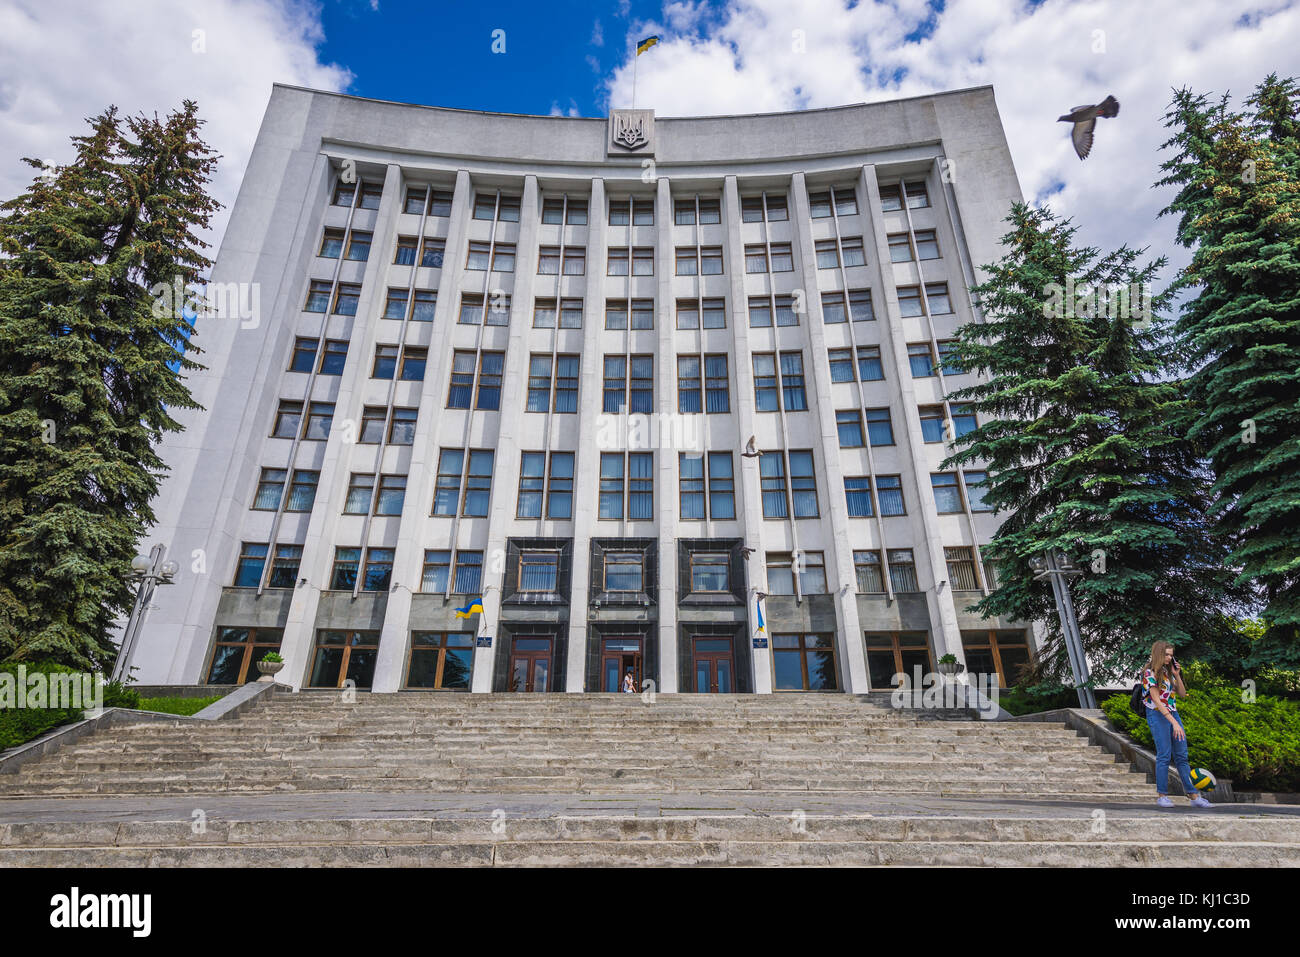 Regional Council headquarters in Ternopil city, administrative center of the Ternopil Oblast region in western Ukraine Stock Photo